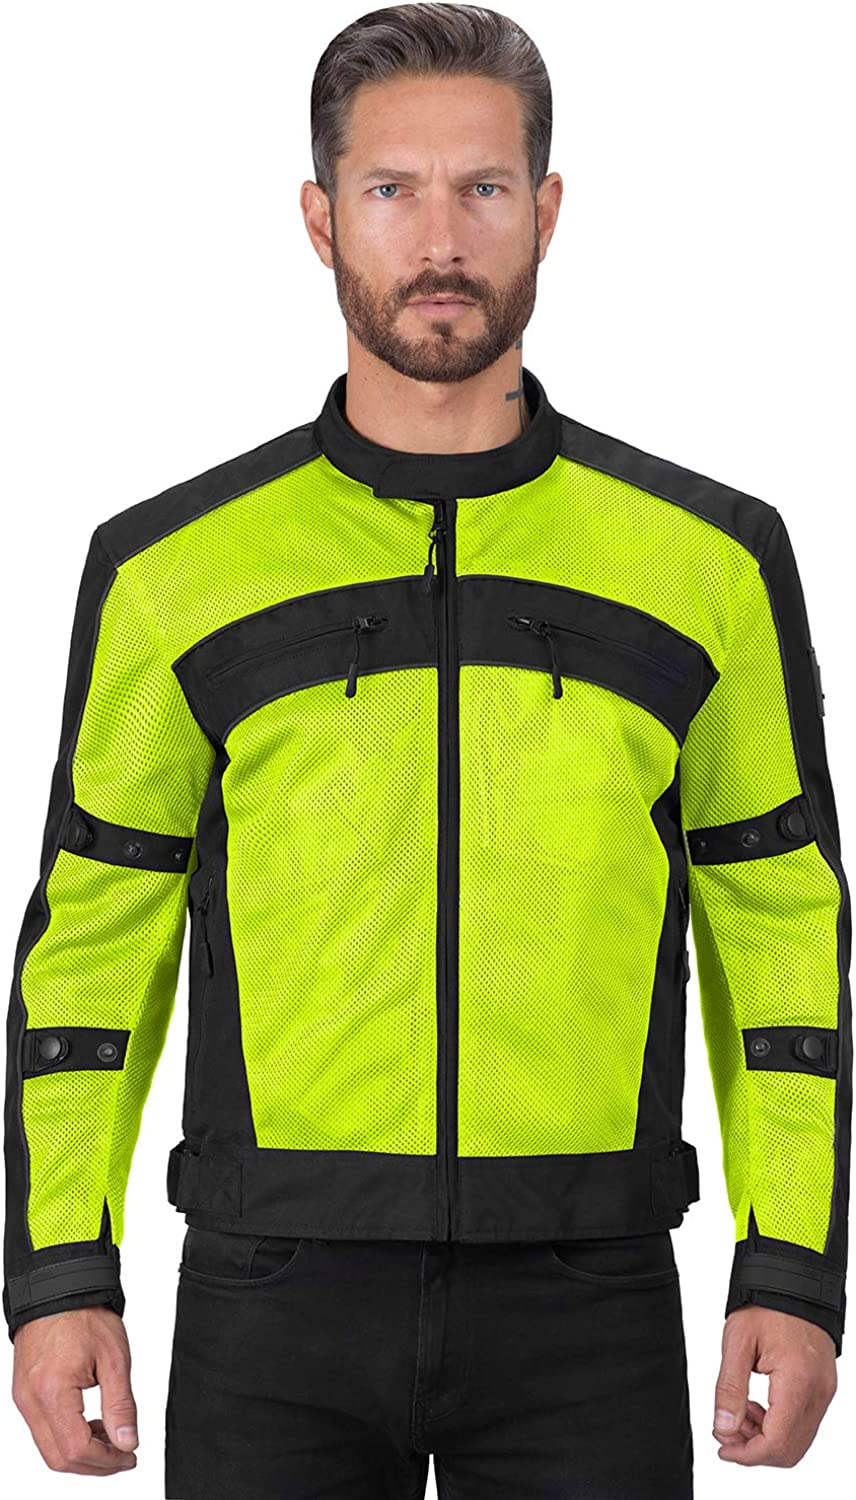 Viking Cycle Ironside Textile Mesh Motorcycle Jacket for Men - Adjustable, CE Approved Breathable Armor for Bikers